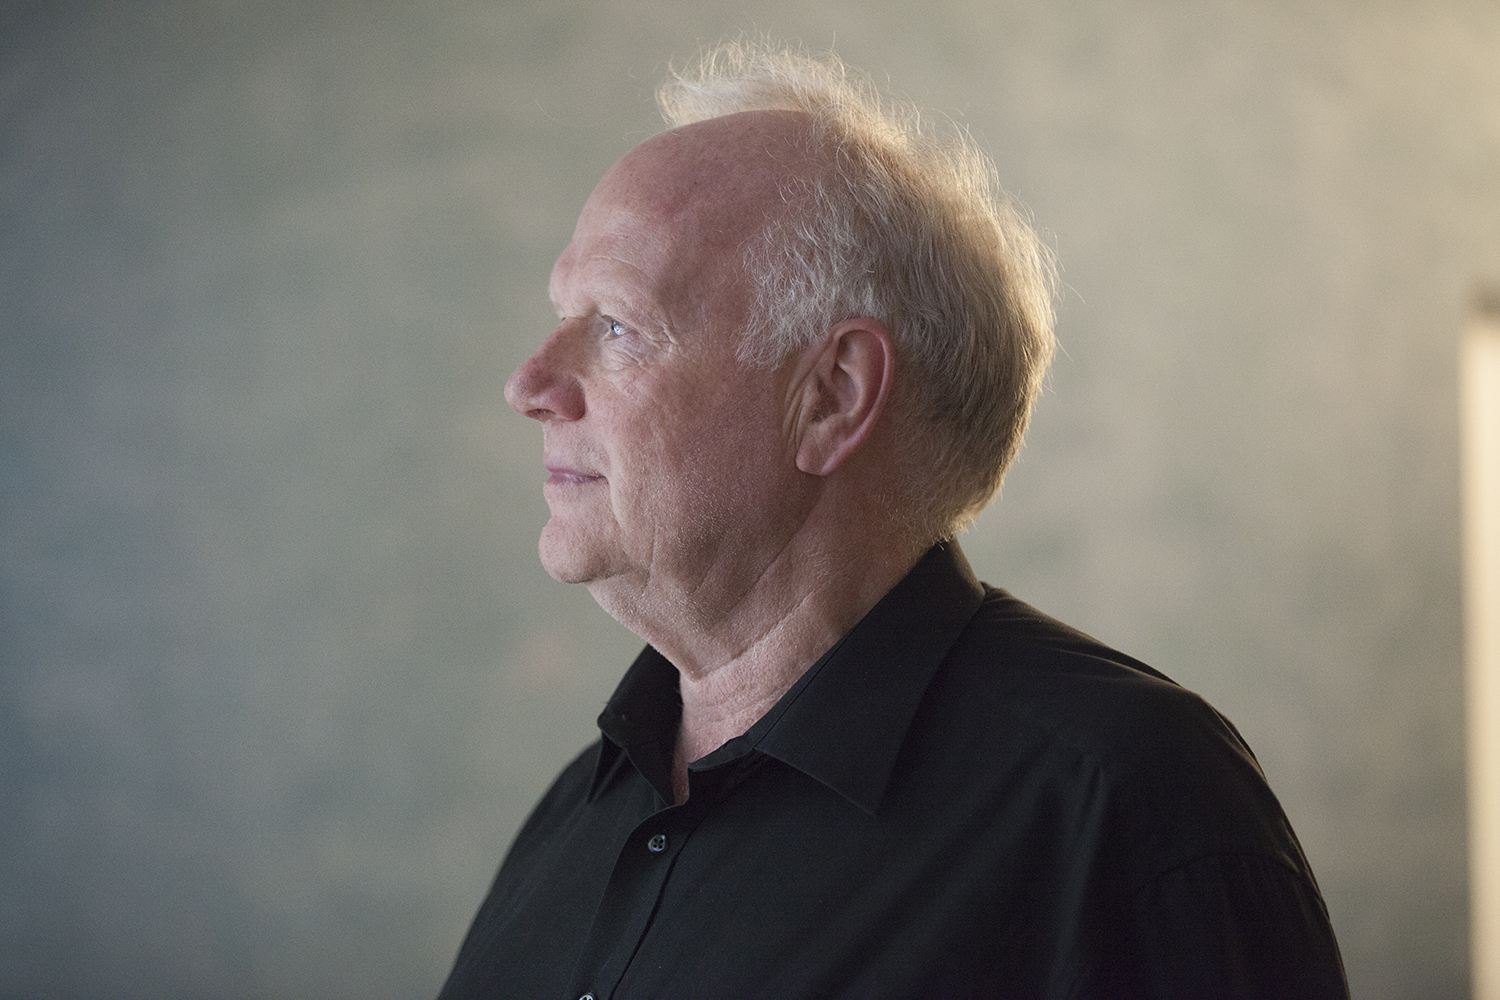 German writer Ulrich Beck in Milano, Italy, on Sept. 18, 2014.